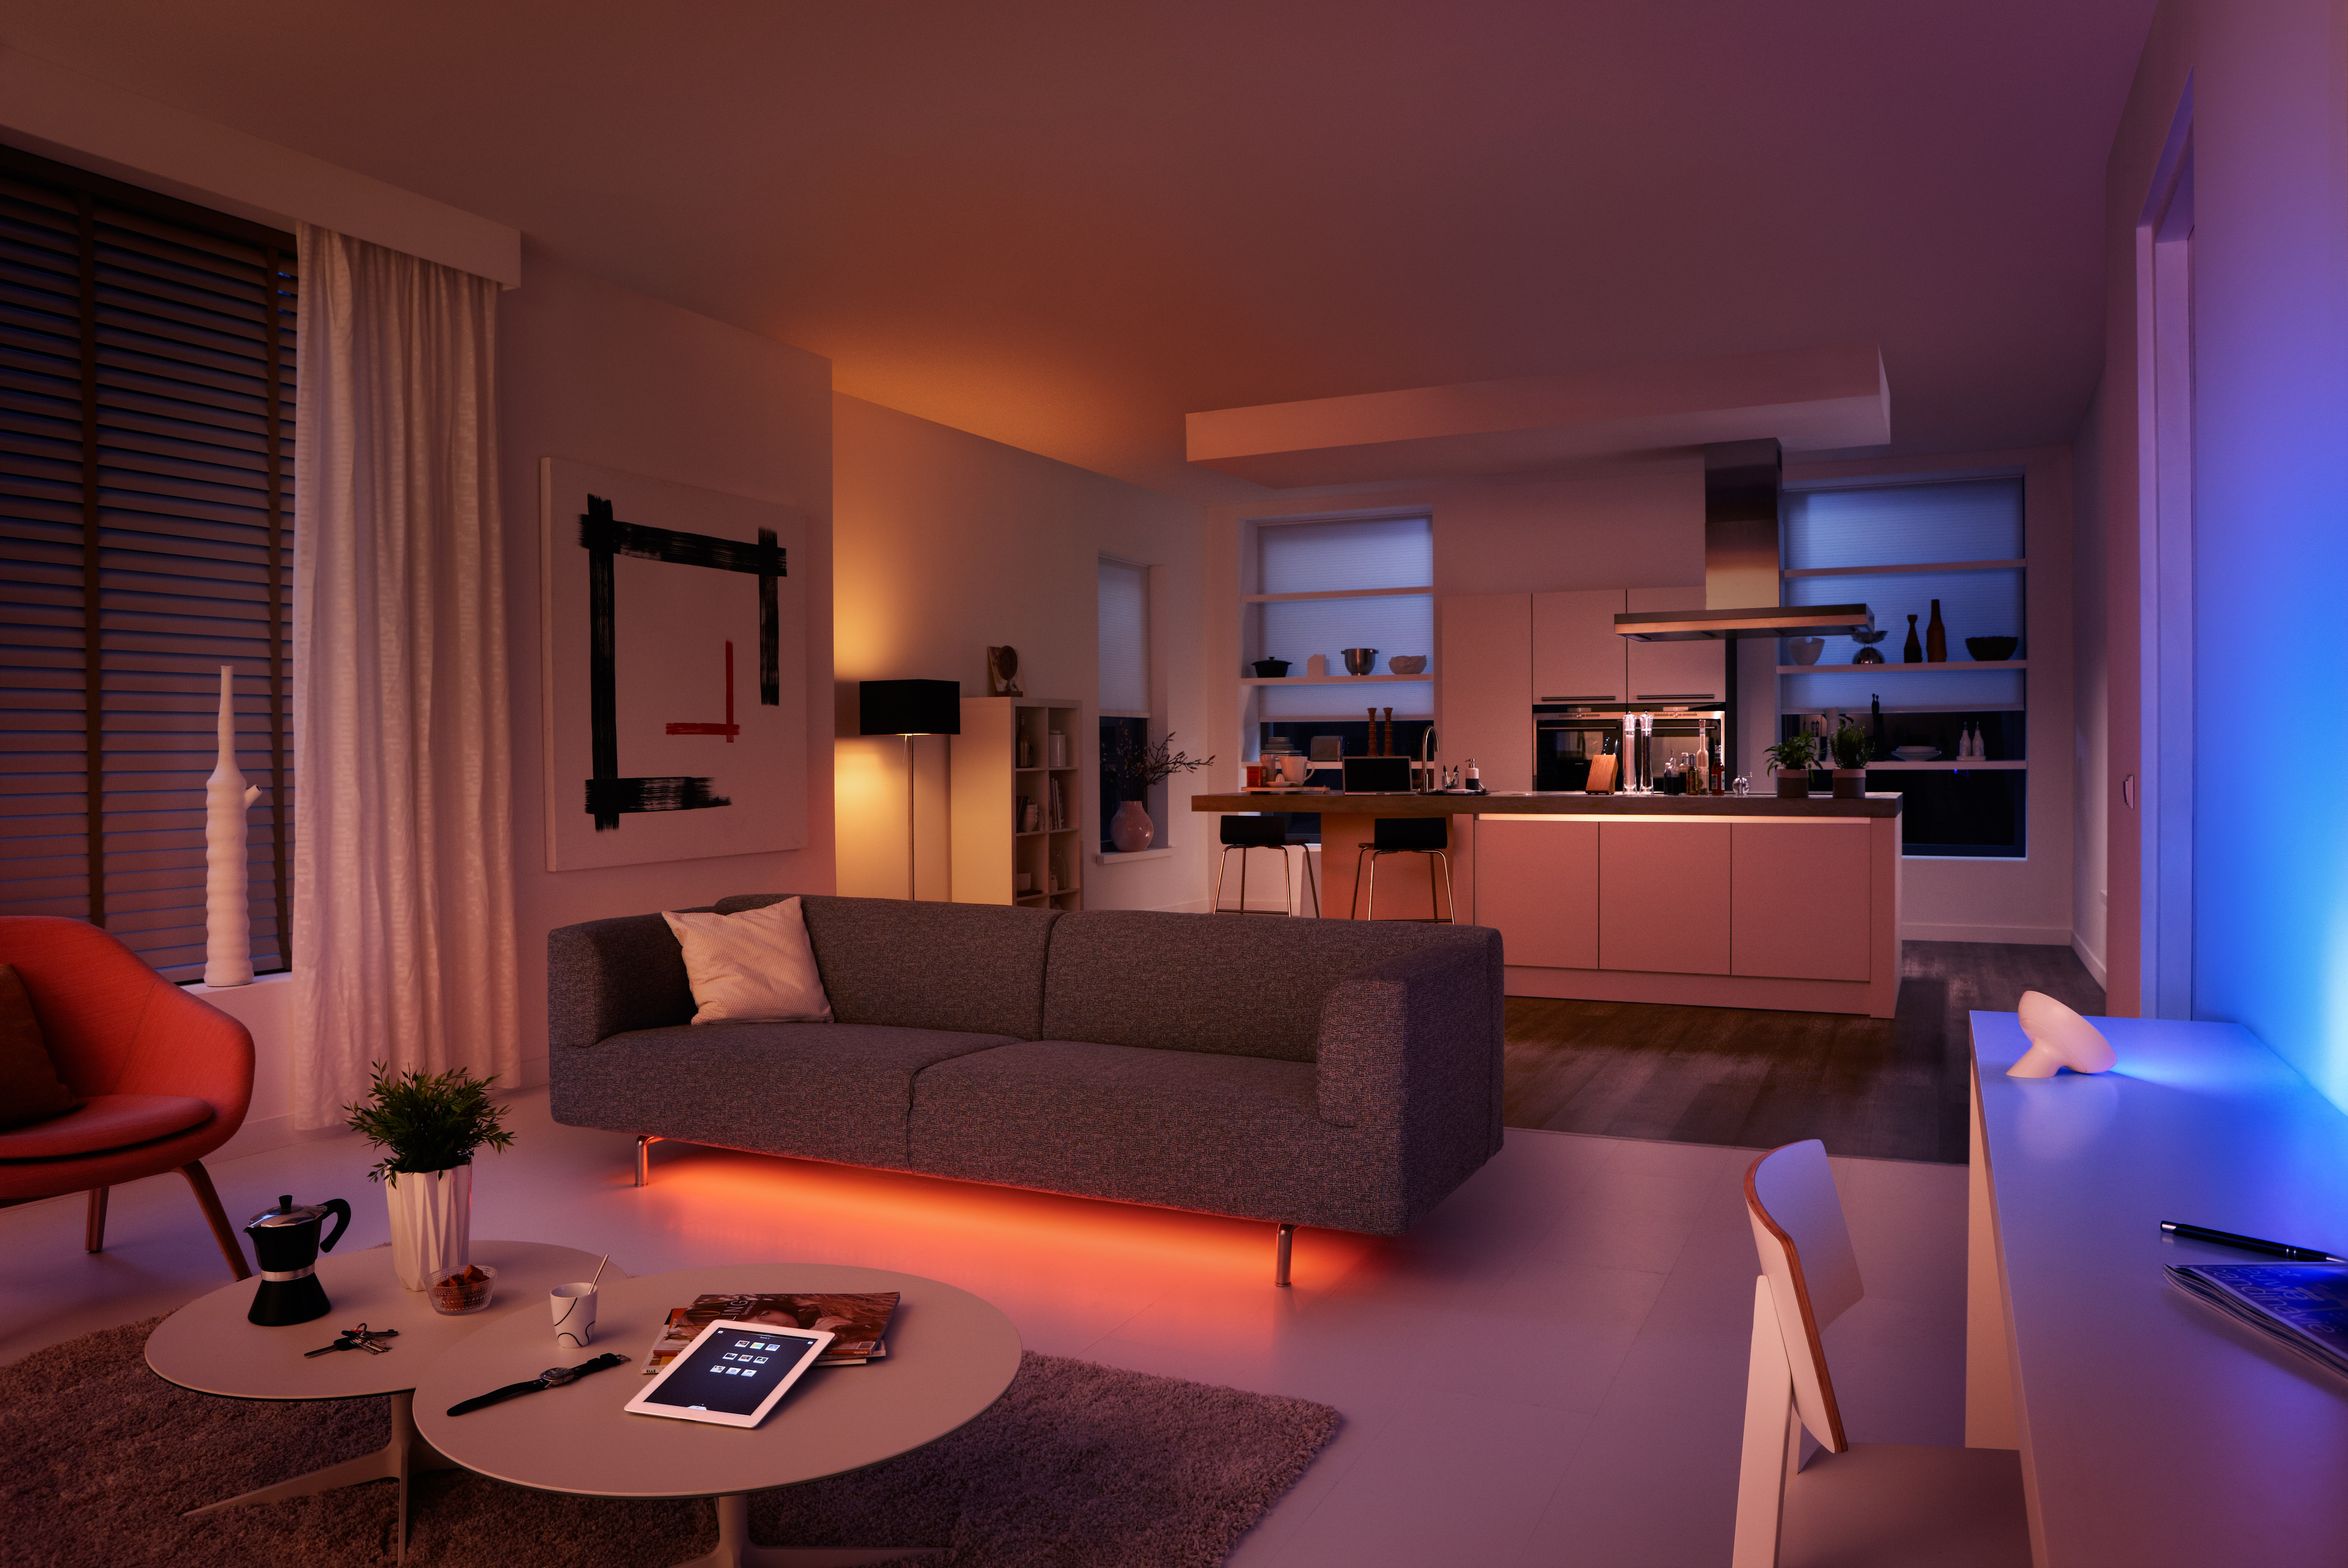 LivingColors-LightStrips-Room-Lifestyle